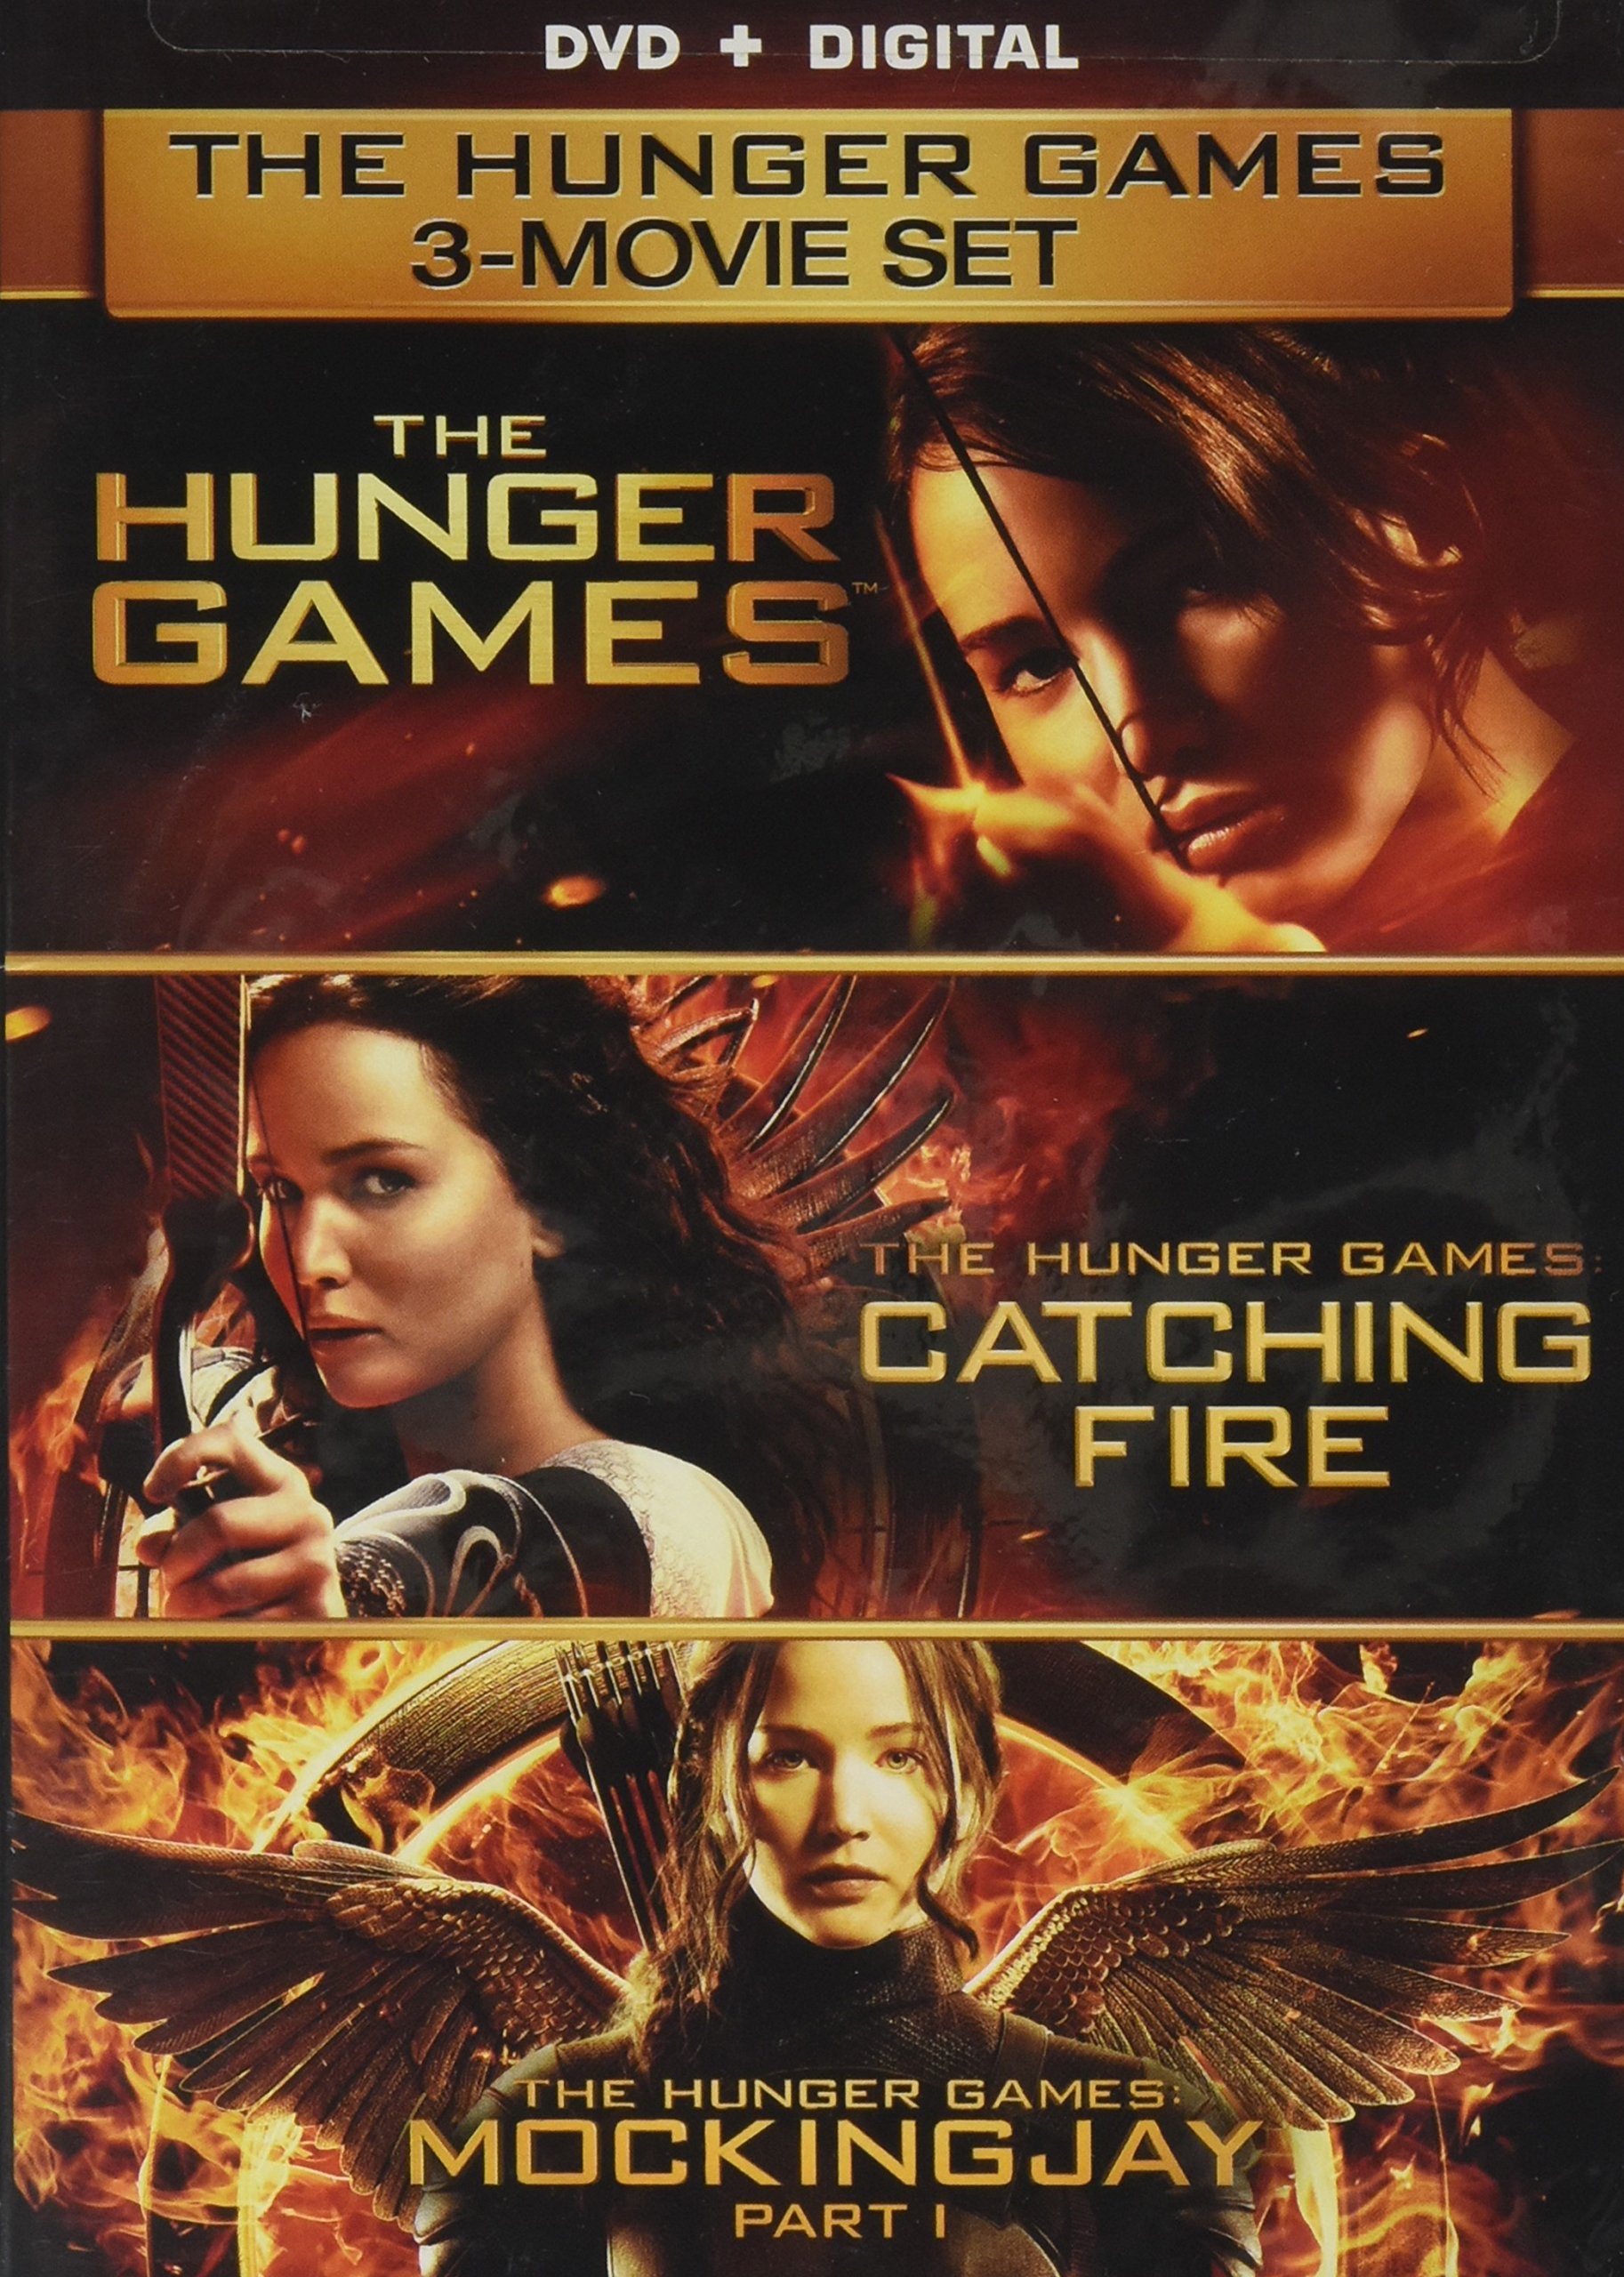 catching fire full movie free 123